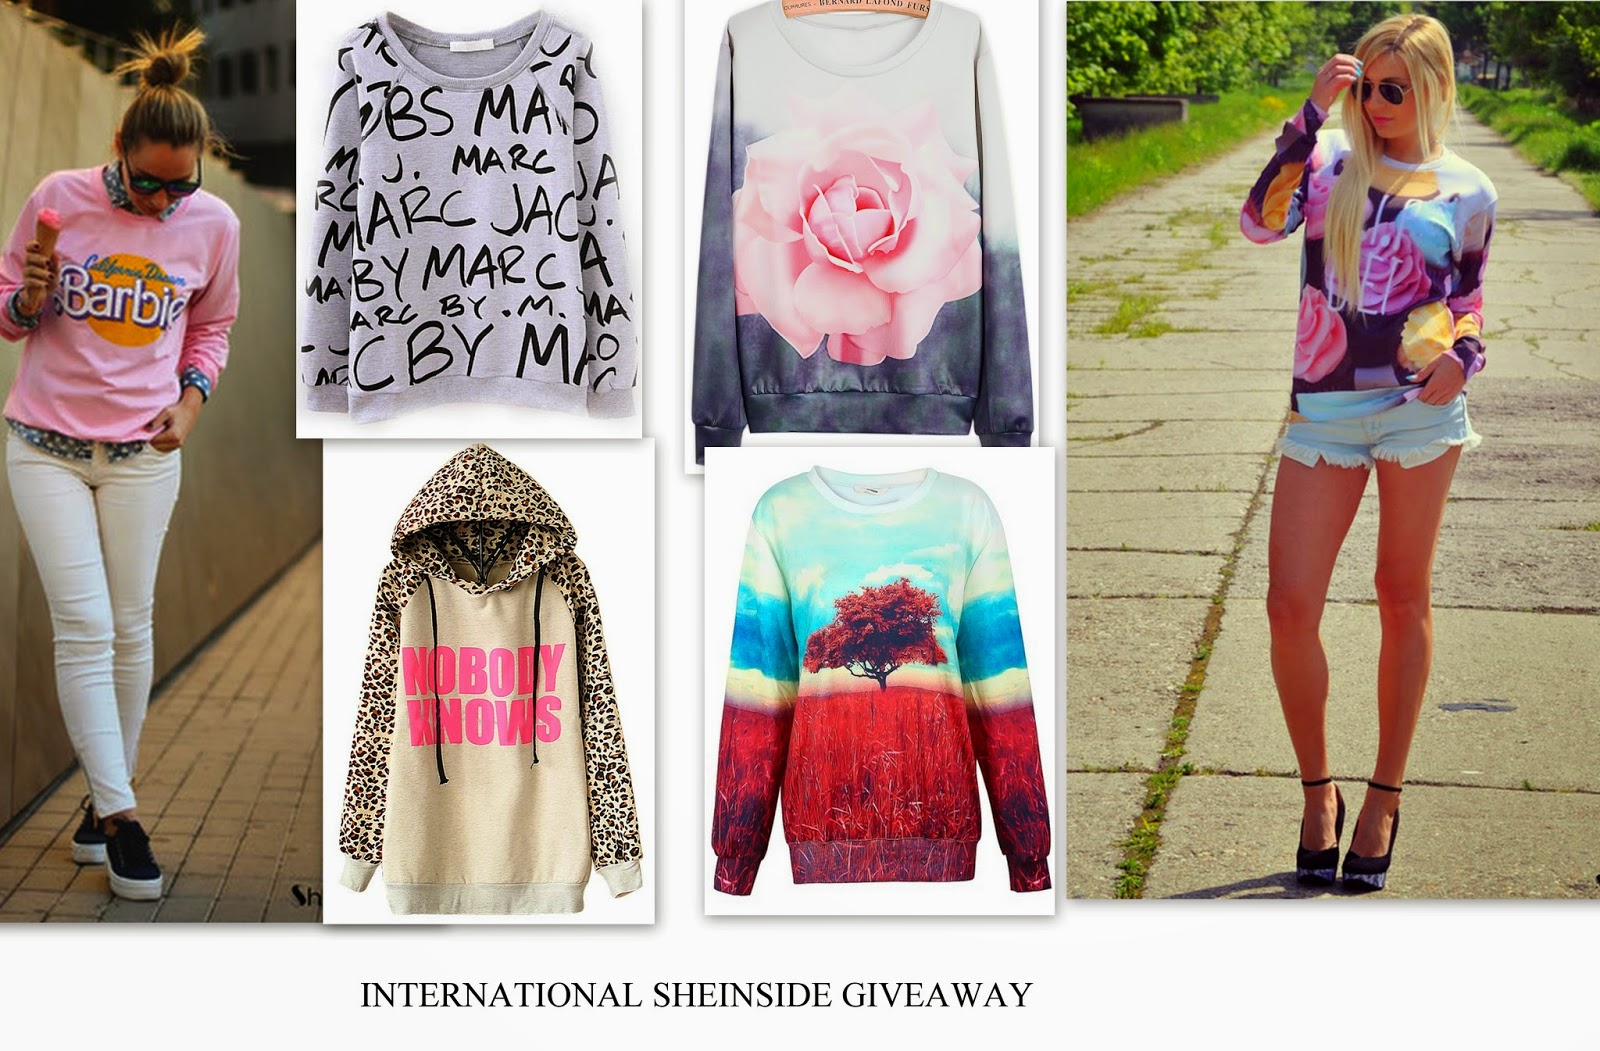 http://www.sheinside.com/publisher-program-a-454.html?aff_id=461